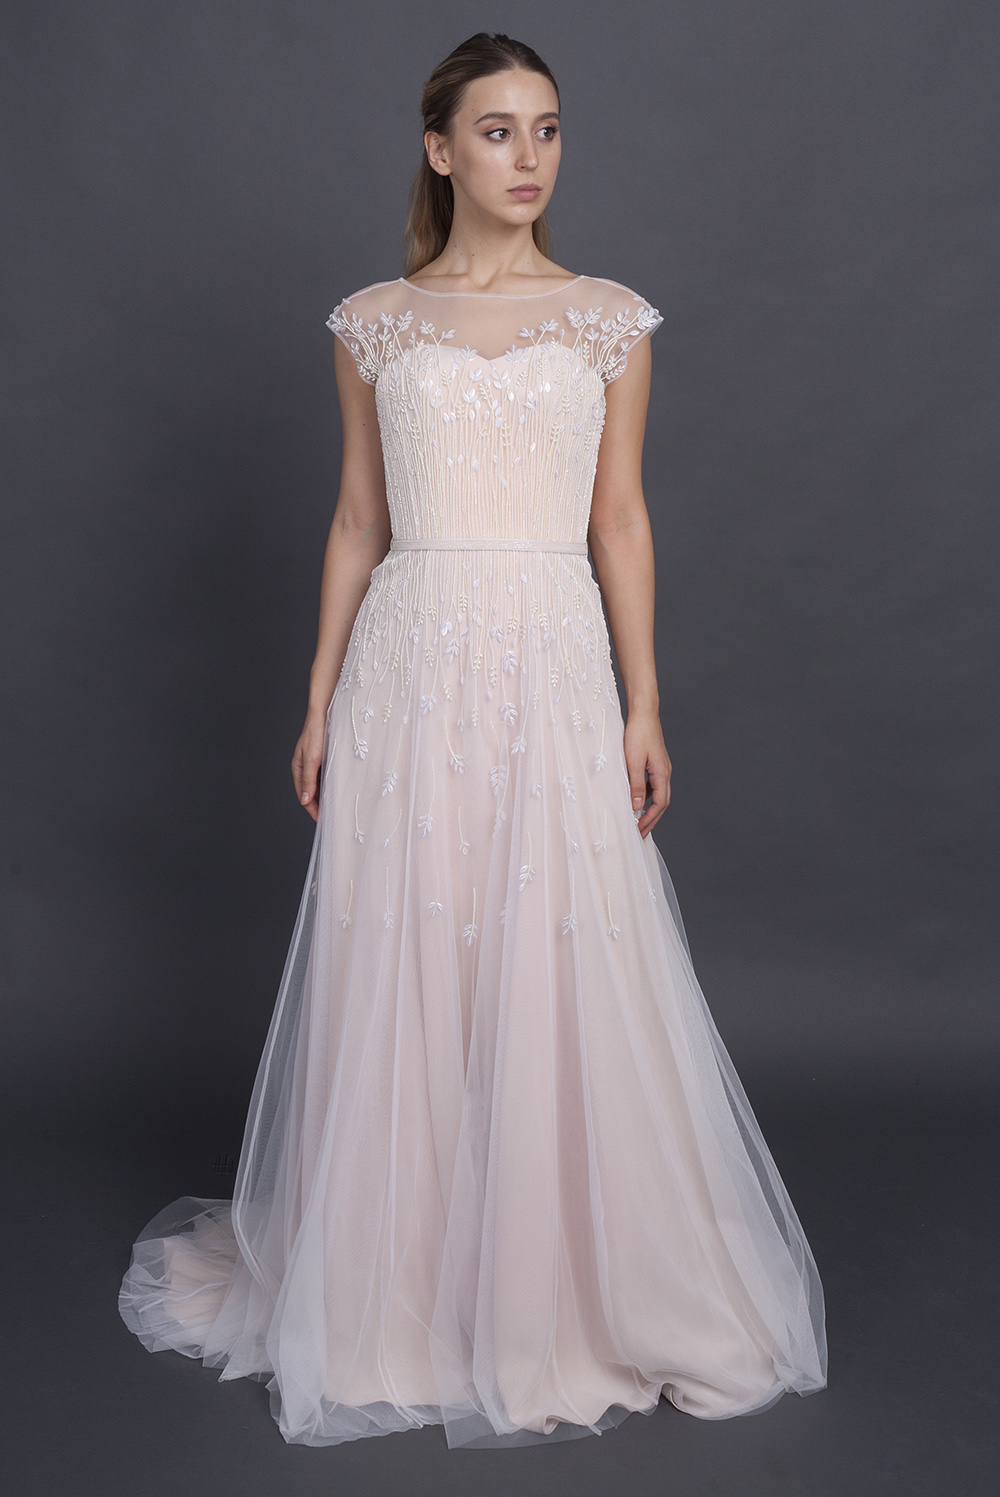 marina-semone-trunk-show-wild-rose-collection-ivory-and-beau-bridal-boutique-savannah-bridal-shop-trunk-show-bridal-wedding-gown-modern-wedding-gown-romantic-floral-detail-savannah-bridal-boutique-wedding-gowns-savannah-georgia-5.jpg